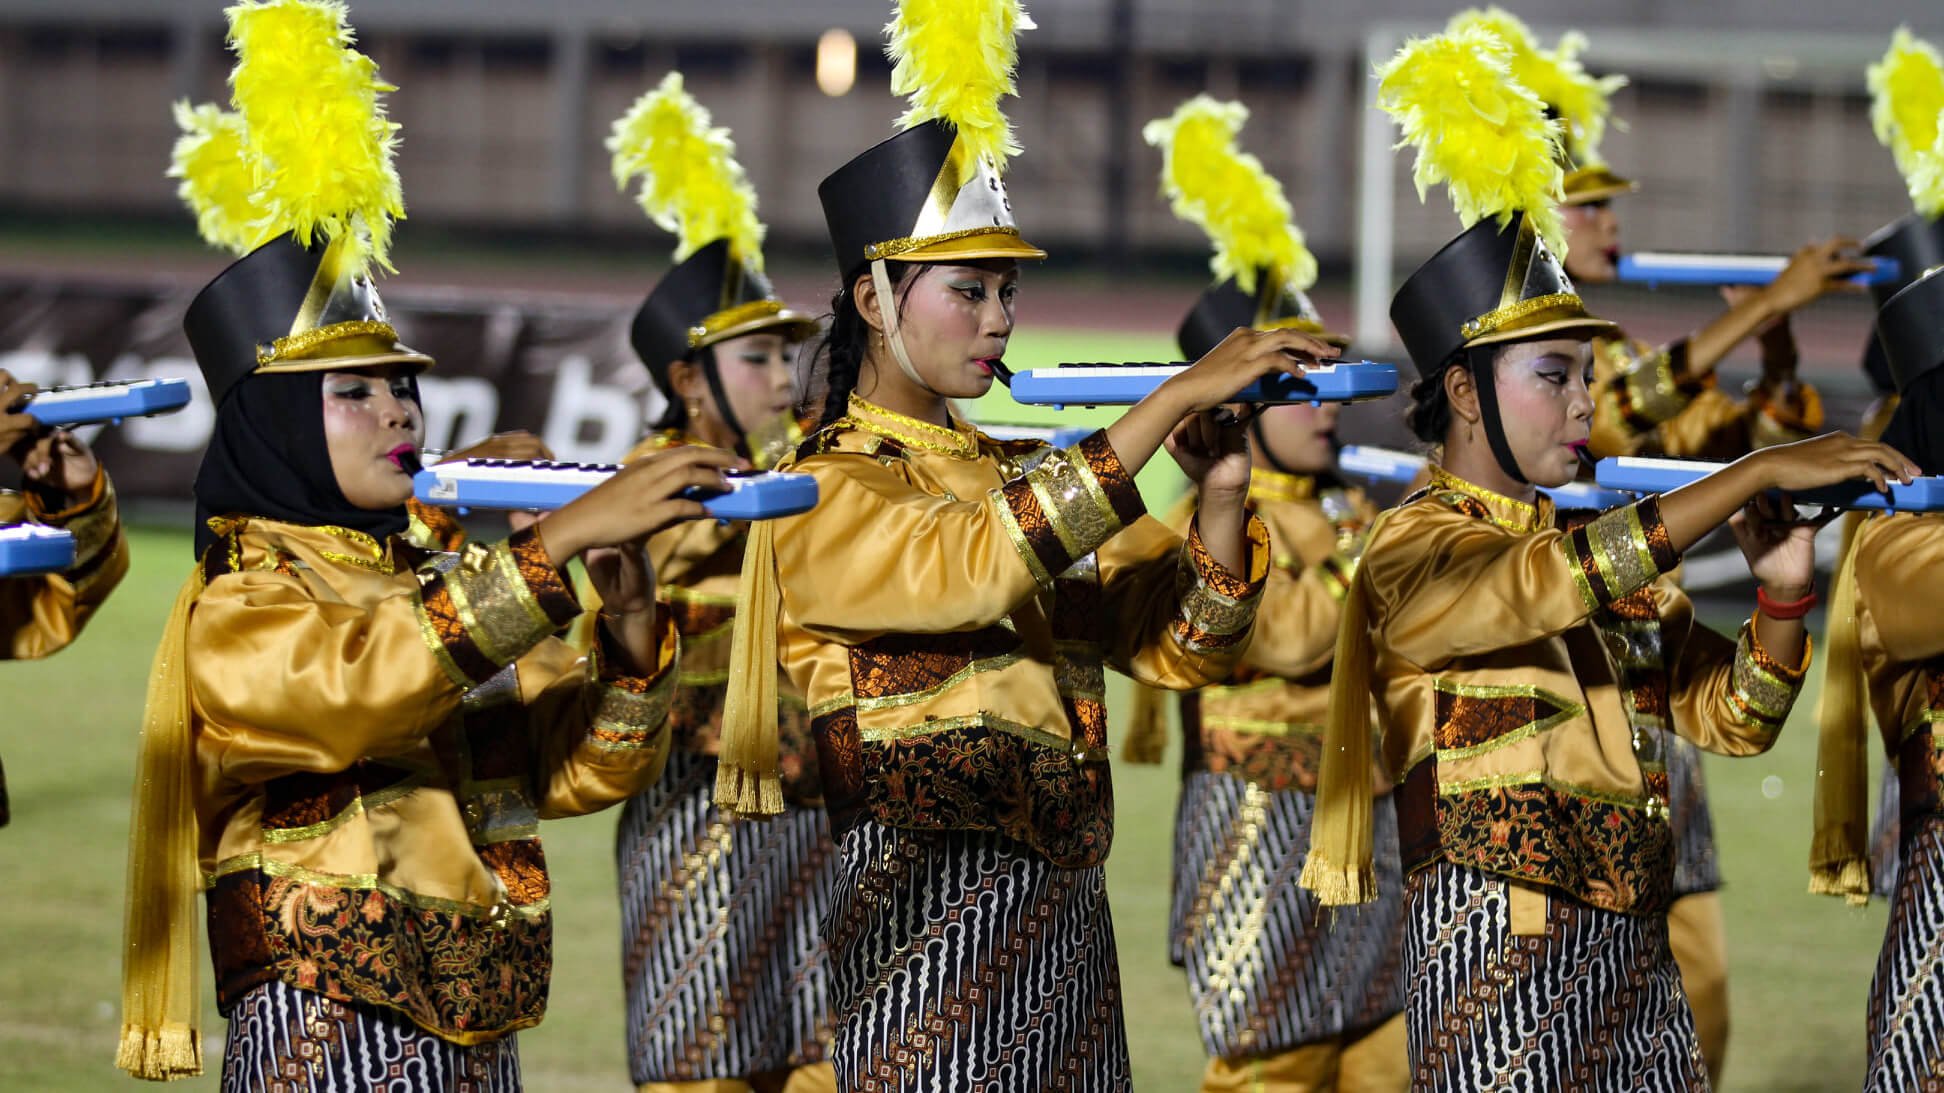 Growth on display at Indonesian Drum Corps Championships